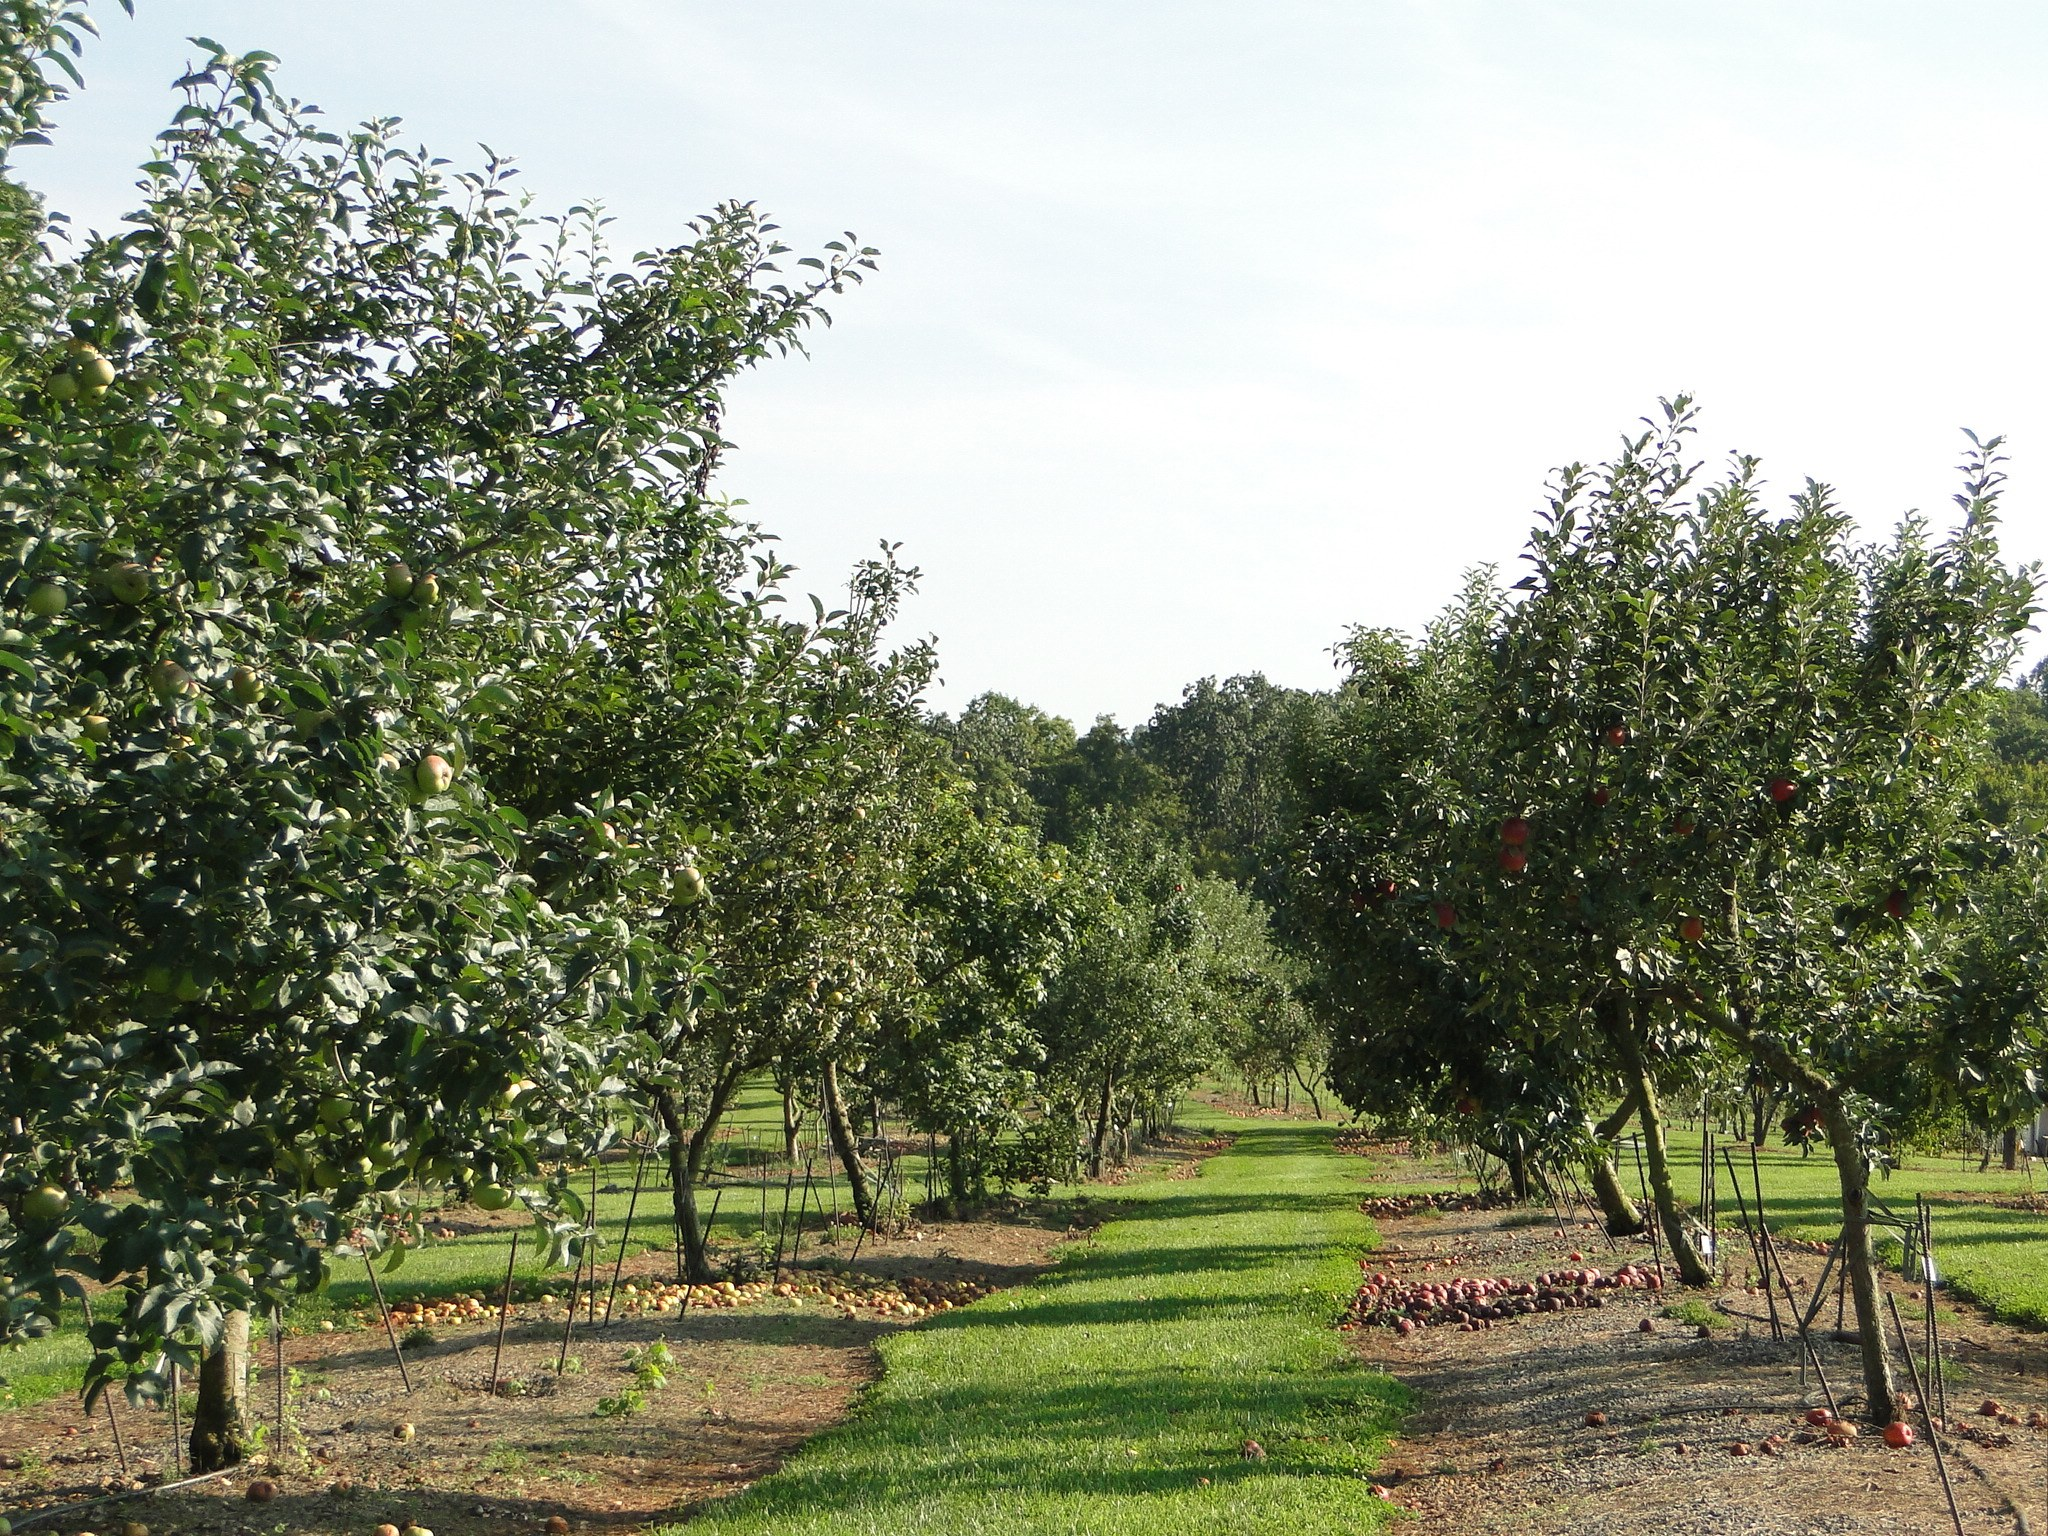 two rows of apple trees in an orchard. There are apples in the trees and on the ground